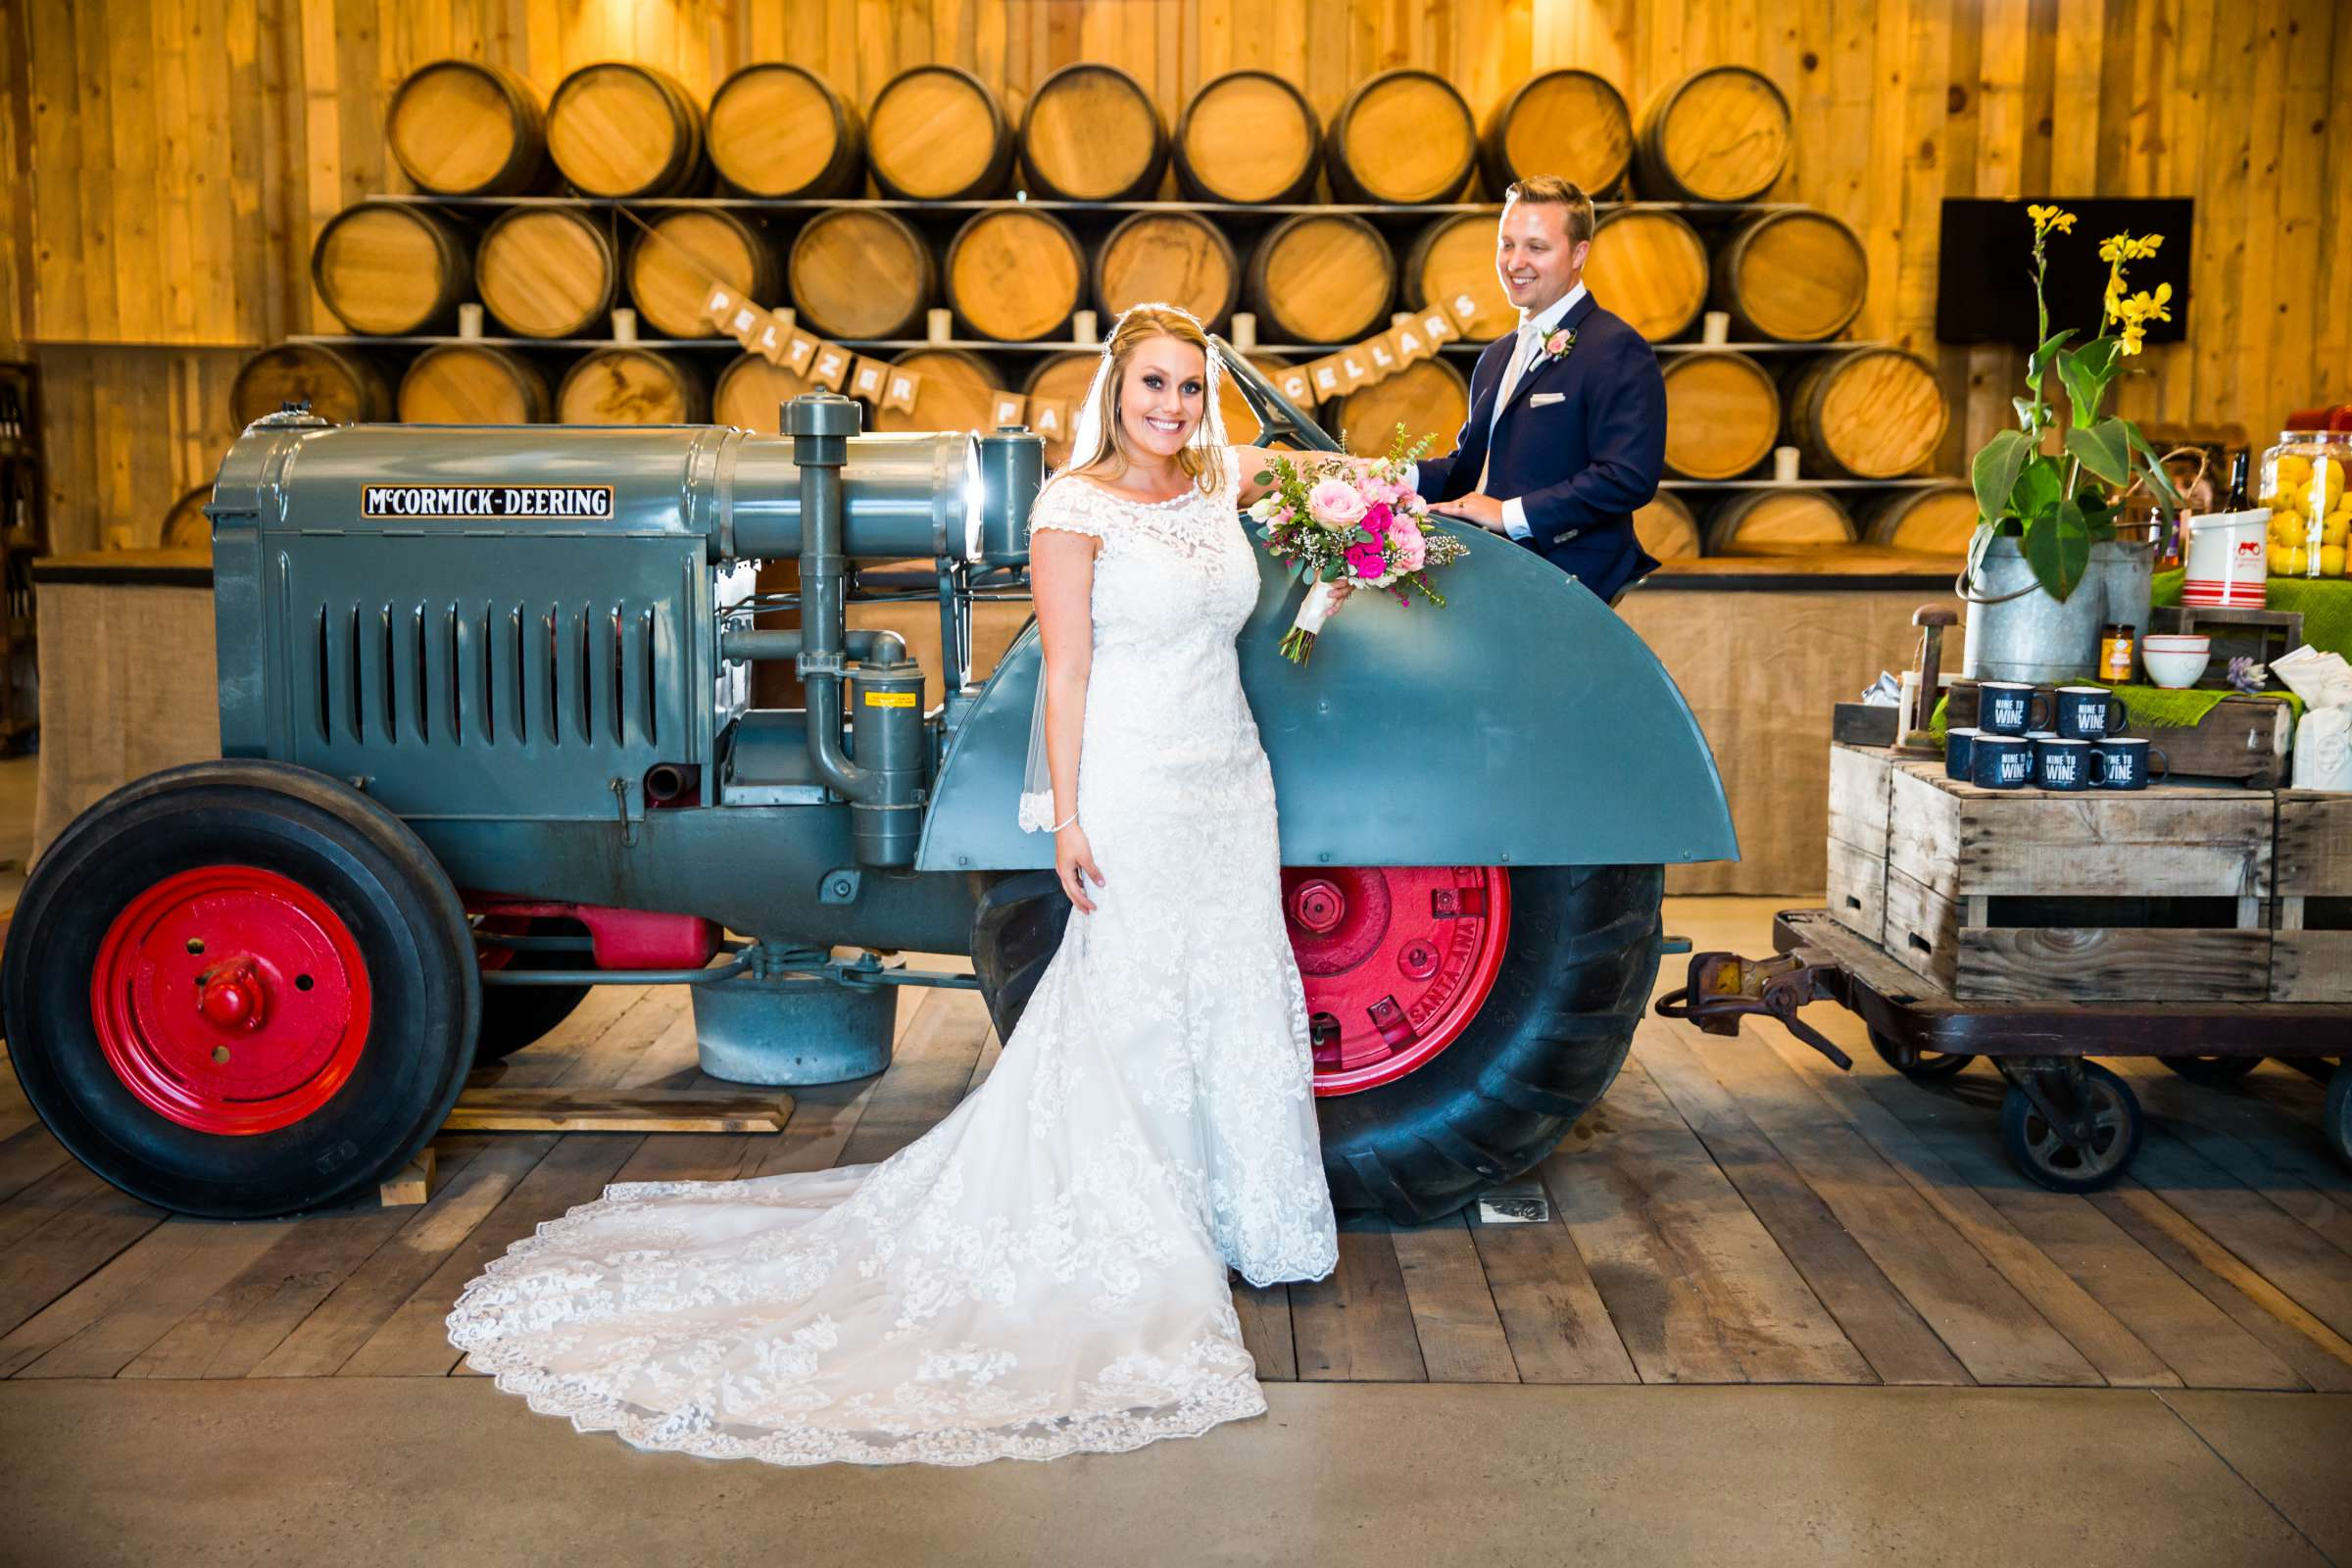 Peltzer Winery Wedding, Jaclyn and Nick Wedding Photo #9 by True Photography